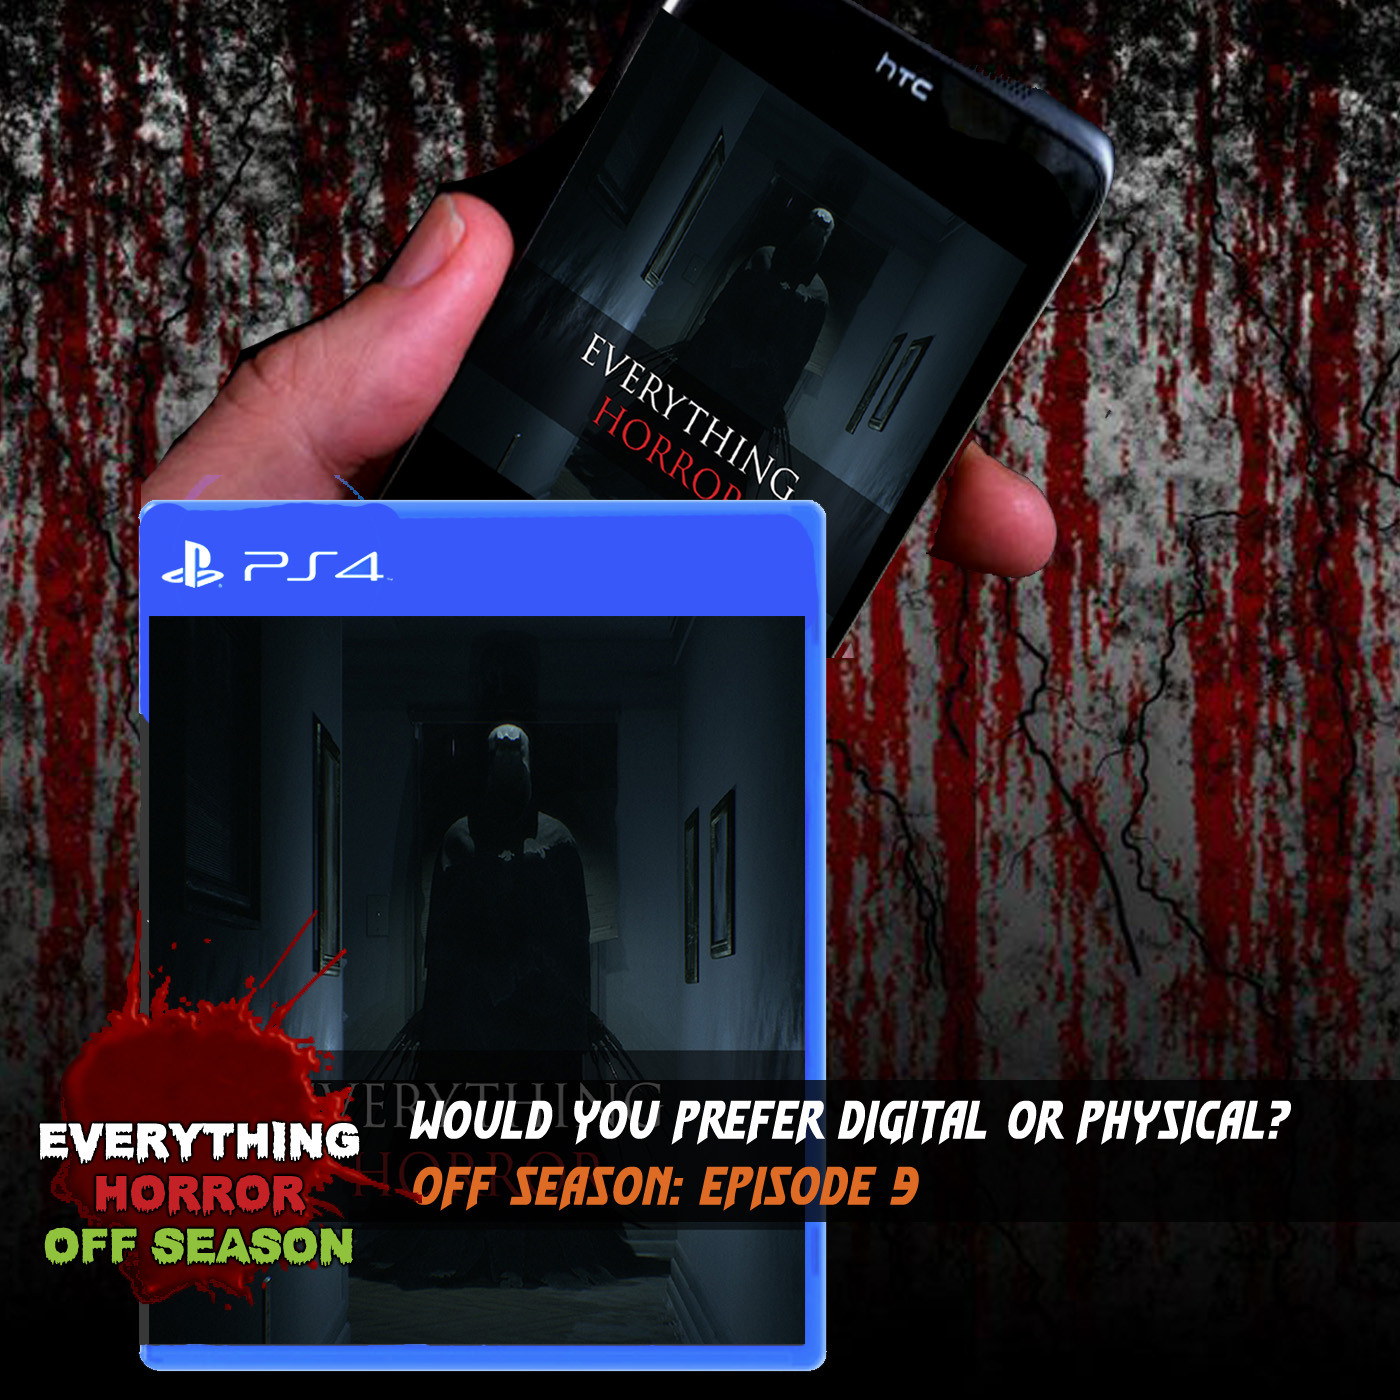 Off Season: Episode 9 - Would You Prefer Digital or Physical?